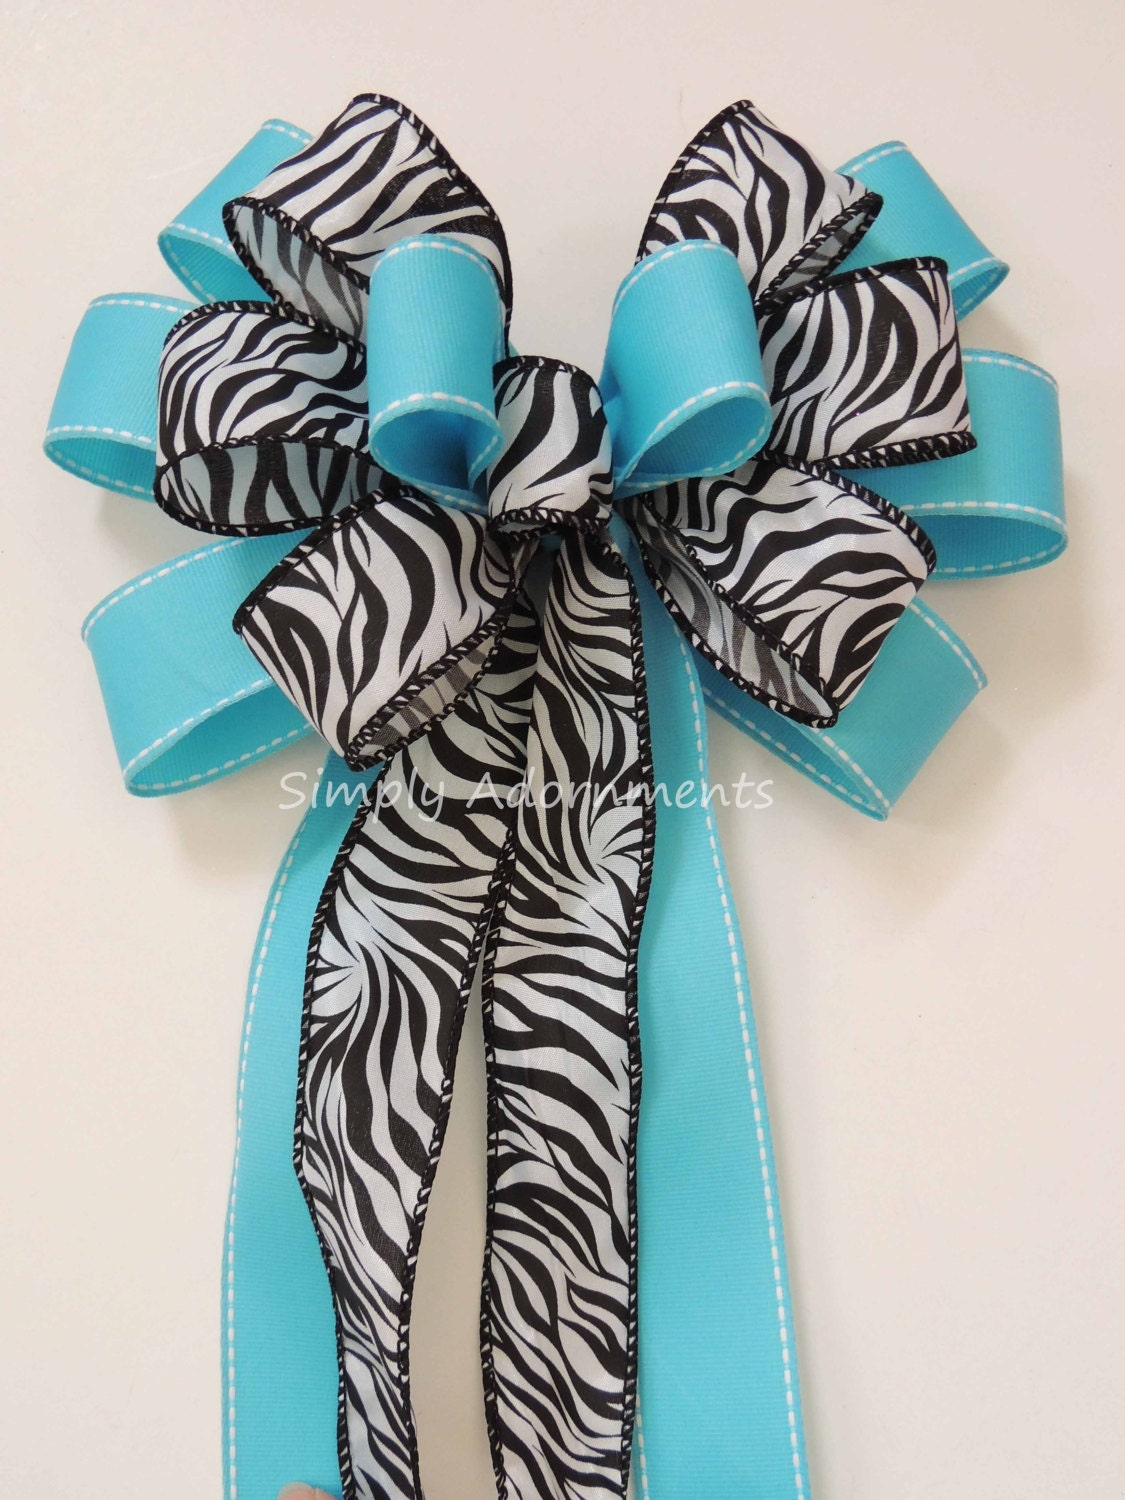 Turquoise zebra Baby Shower Turquoise zebra Birthday Party Decor